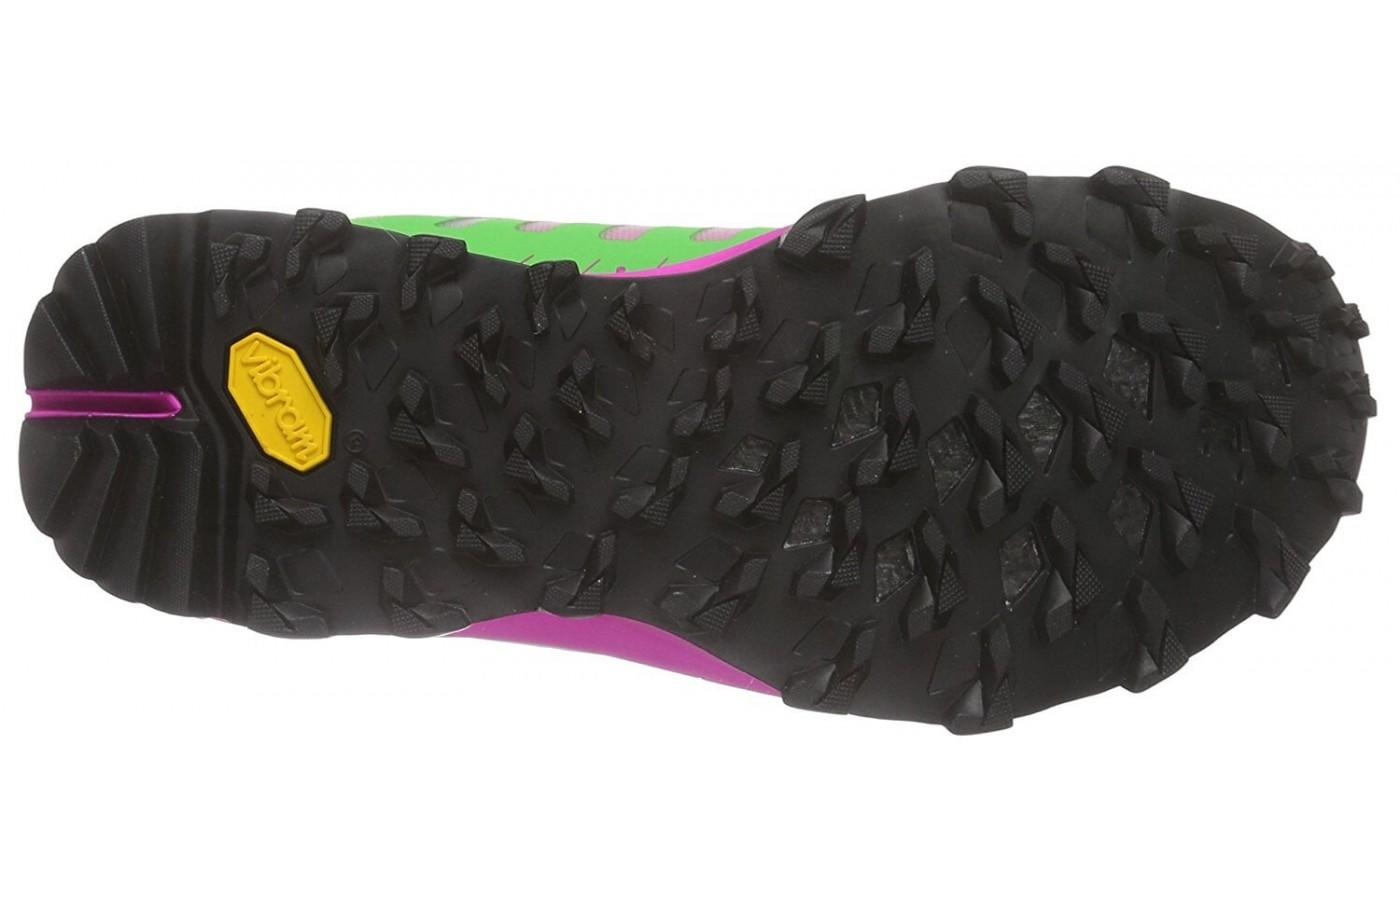 The outsole of the Dynafit Feline Vertical Pro gets great traction on tough, steep terrain